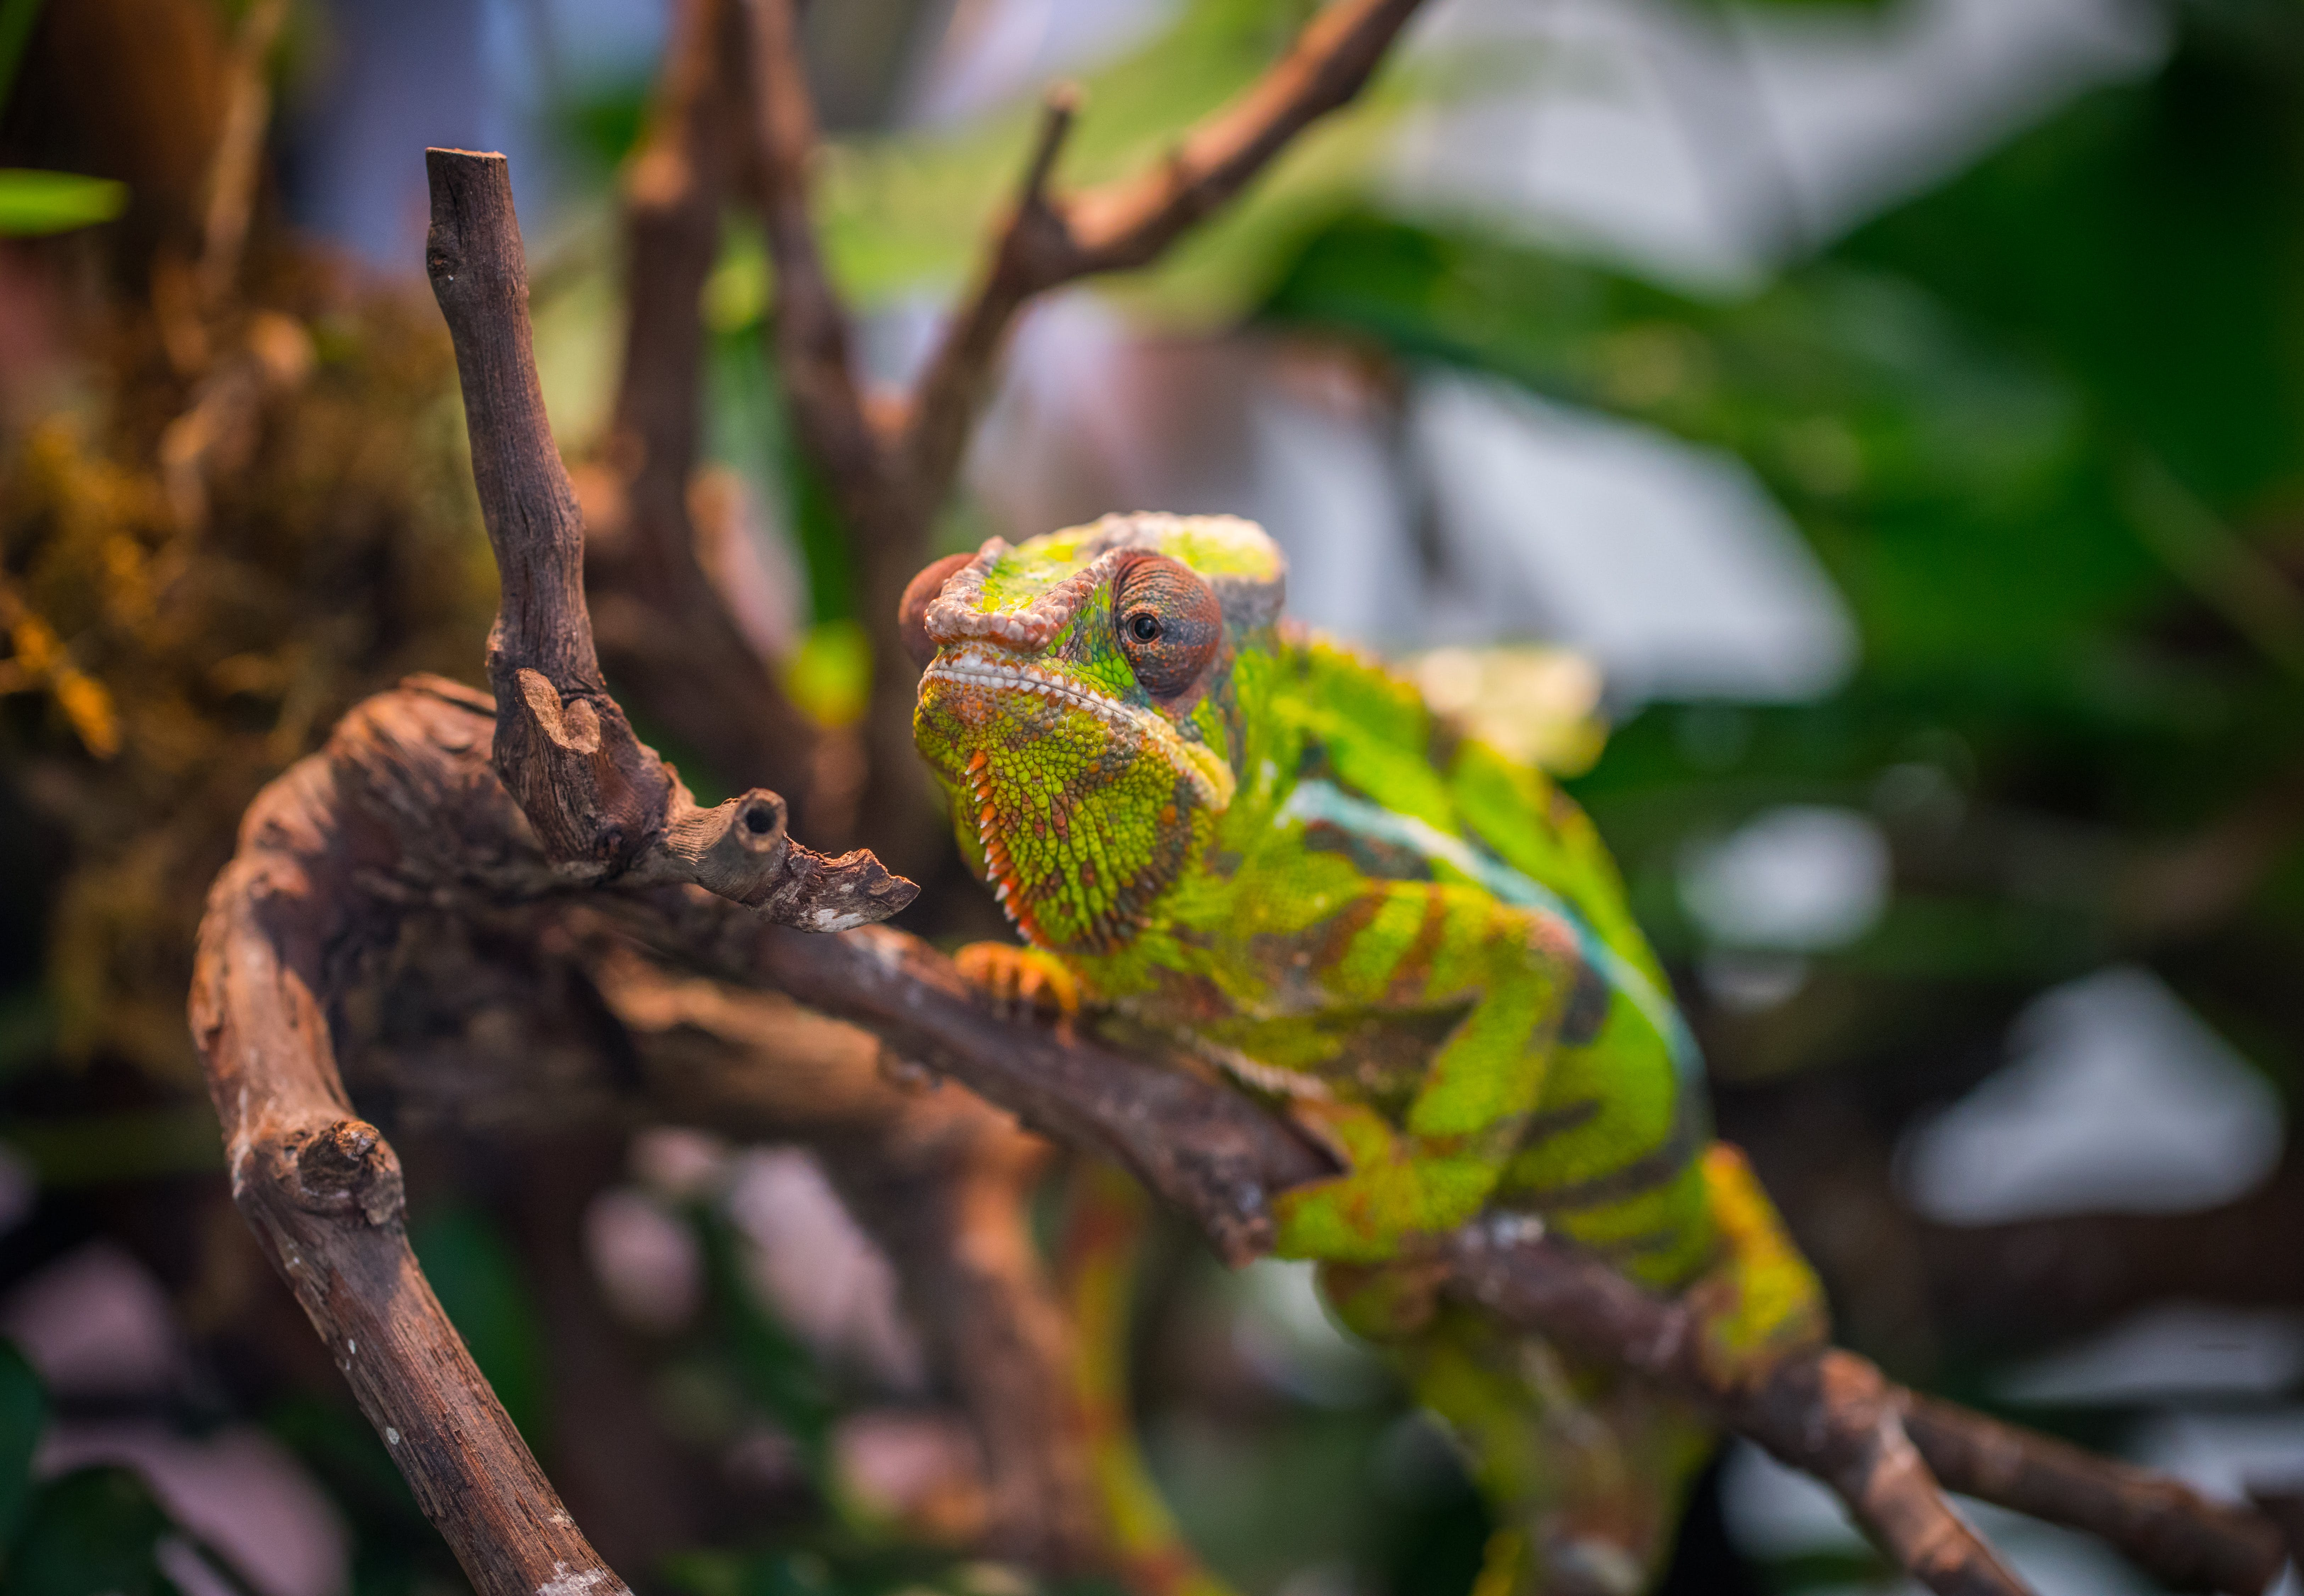 Selective Focus Photography of Green and Brown Chameleon Perched on Brown Tree Branch at Daytime